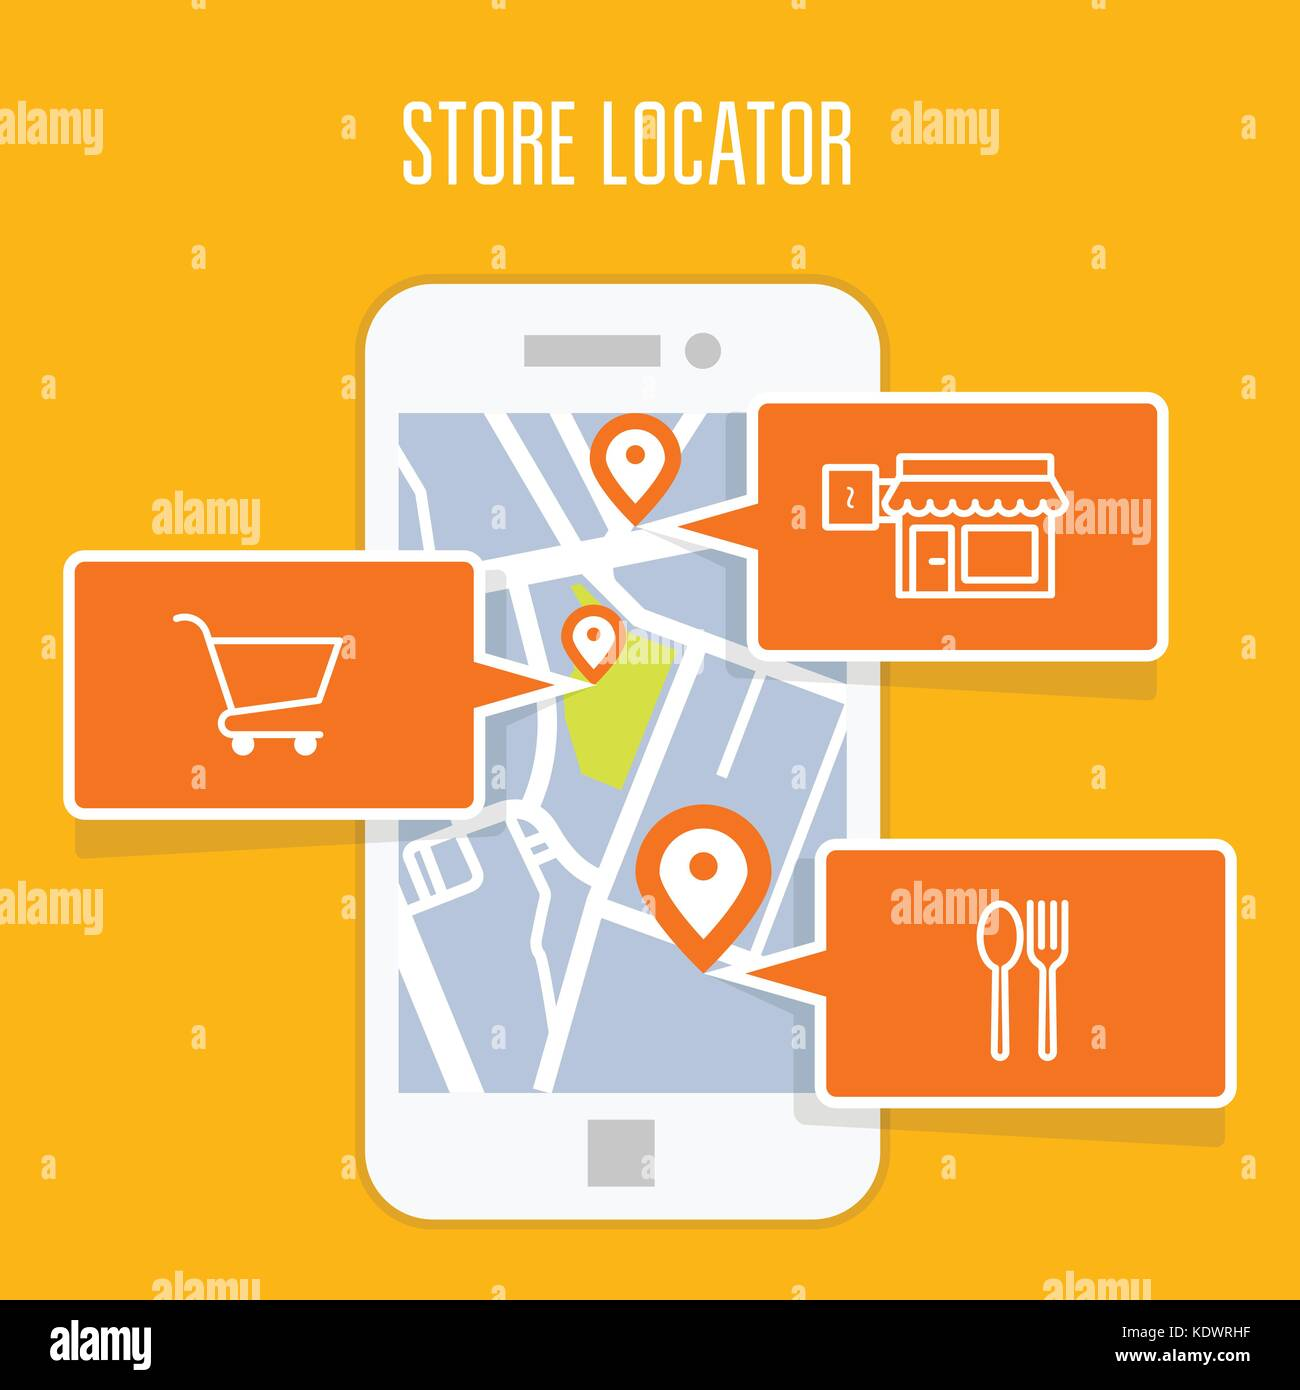 Store locator tracker app and mobile gps navigation - Stock Vector